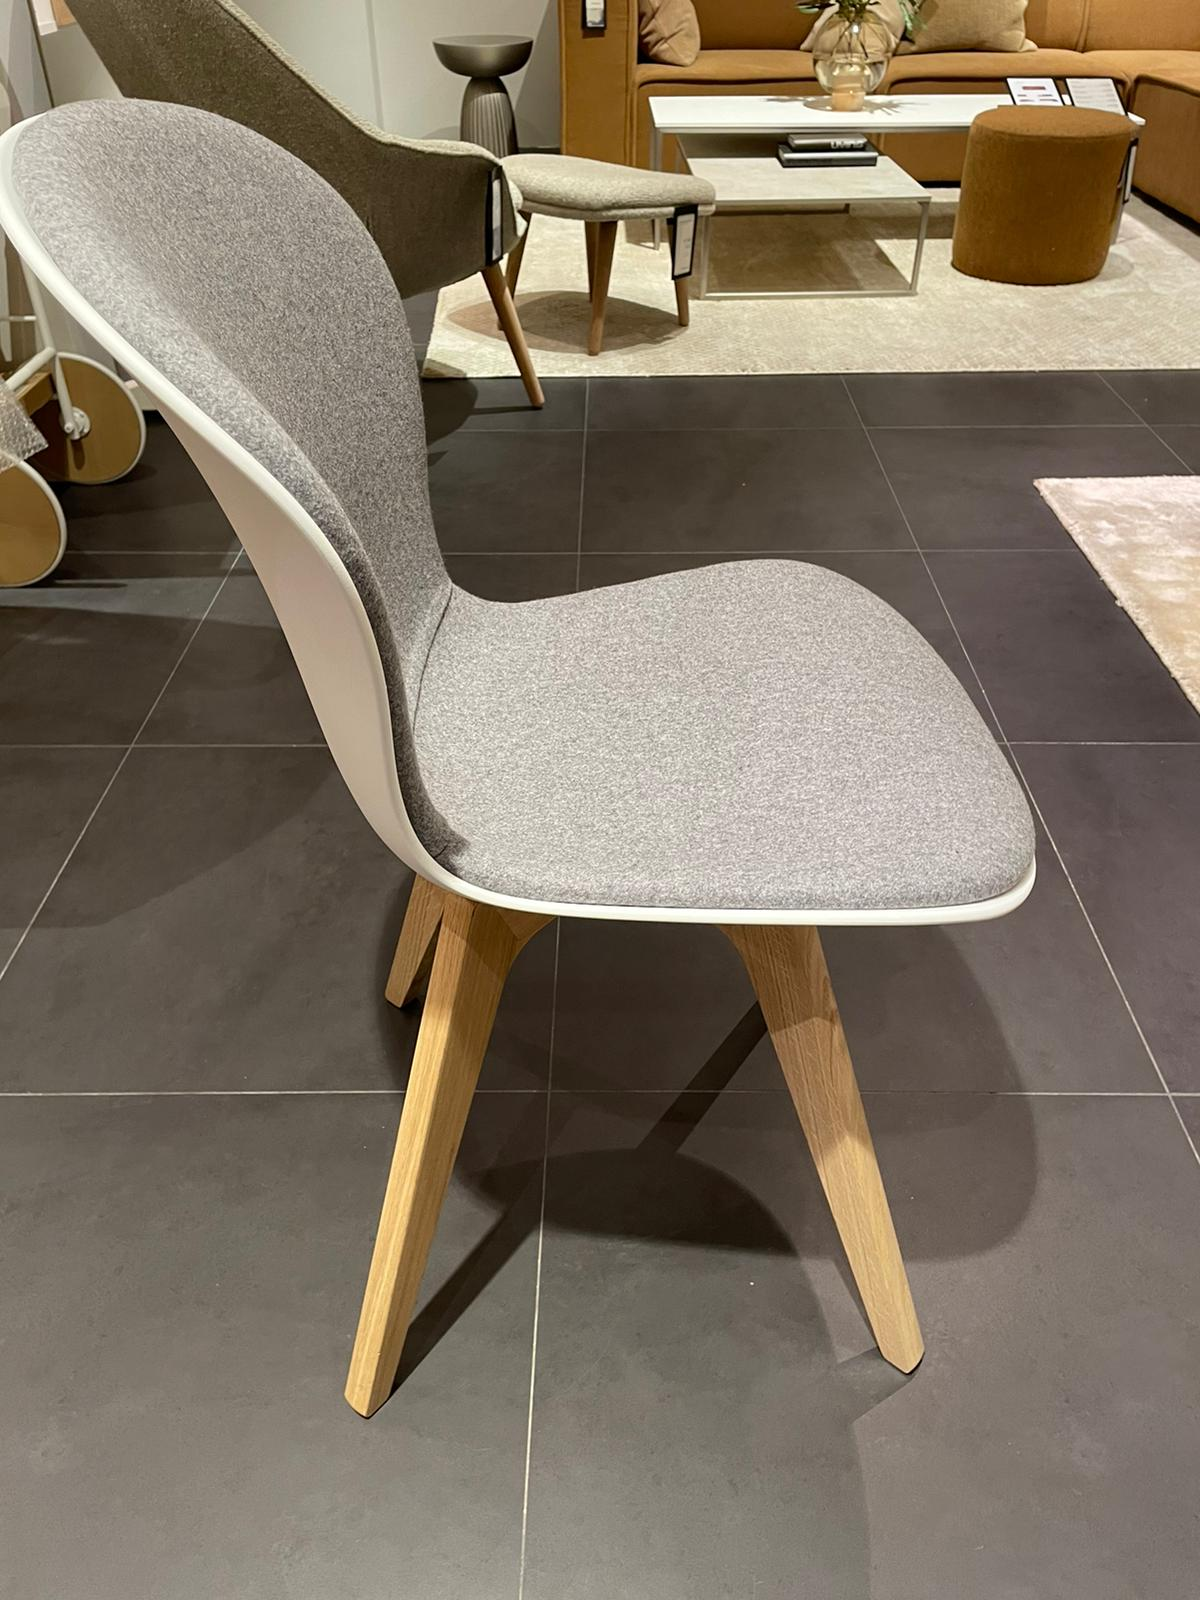 Set of 4 Adelaide chairs